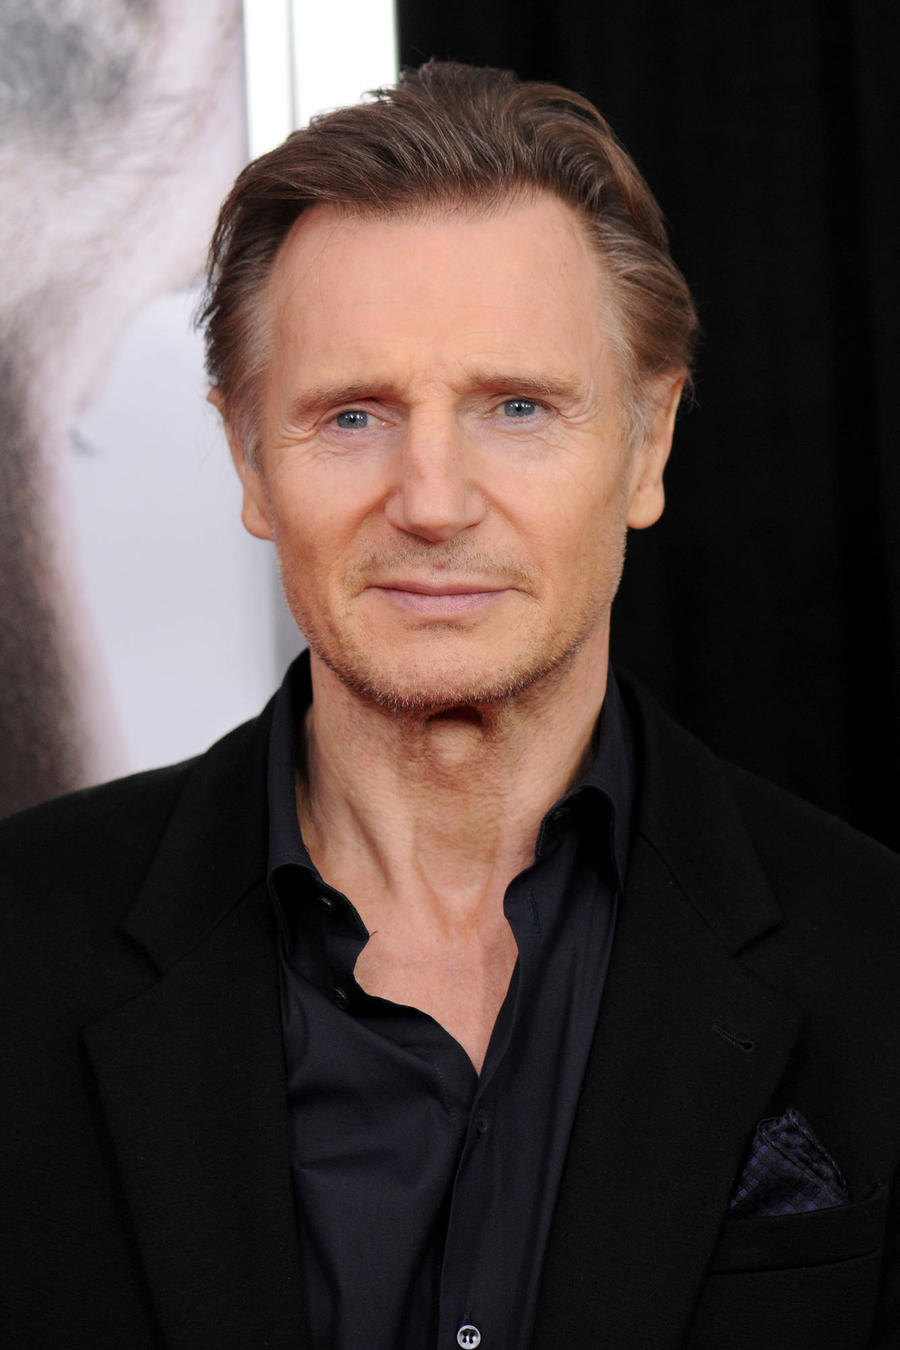 Liam Neeson And Olivia Wilde Are Paul Haggis Third Person: Biography, News, Photos And Videos